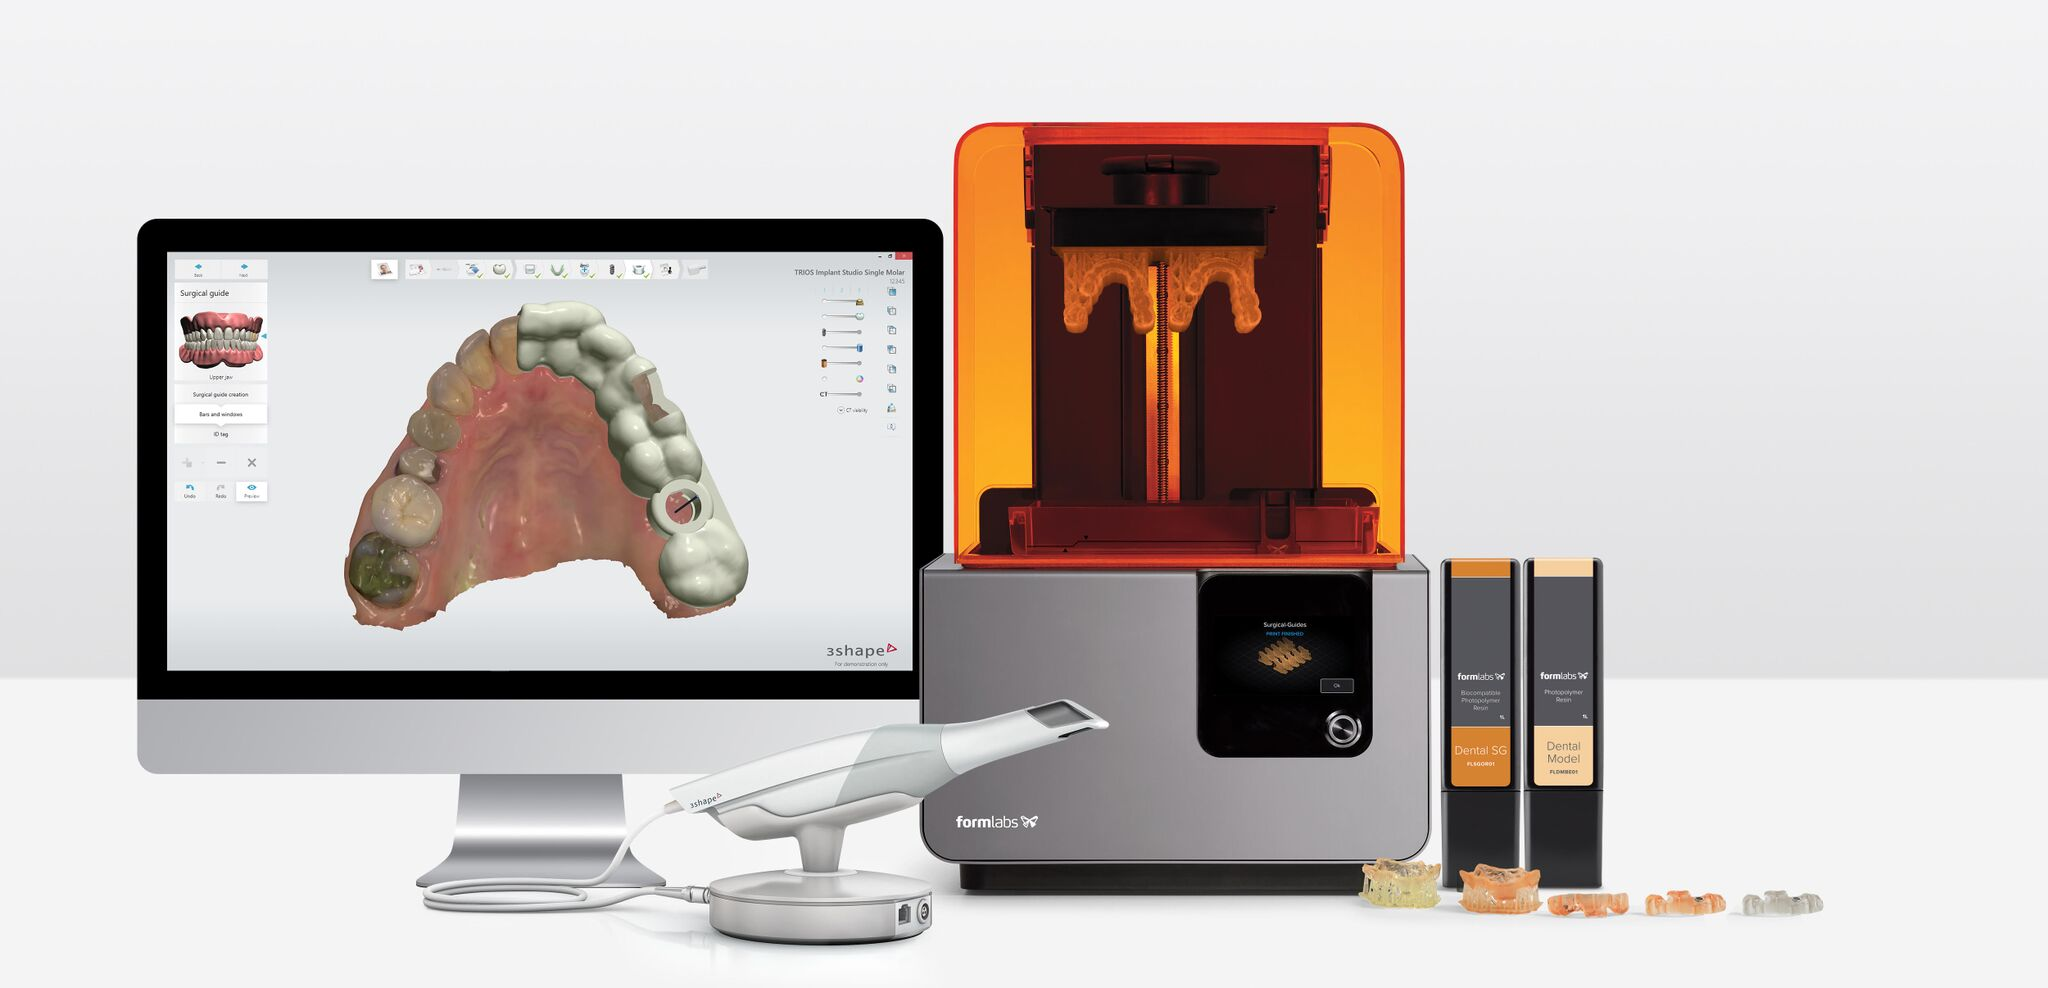 Formlabs and 3shape Announce Partnership to Introduce Software